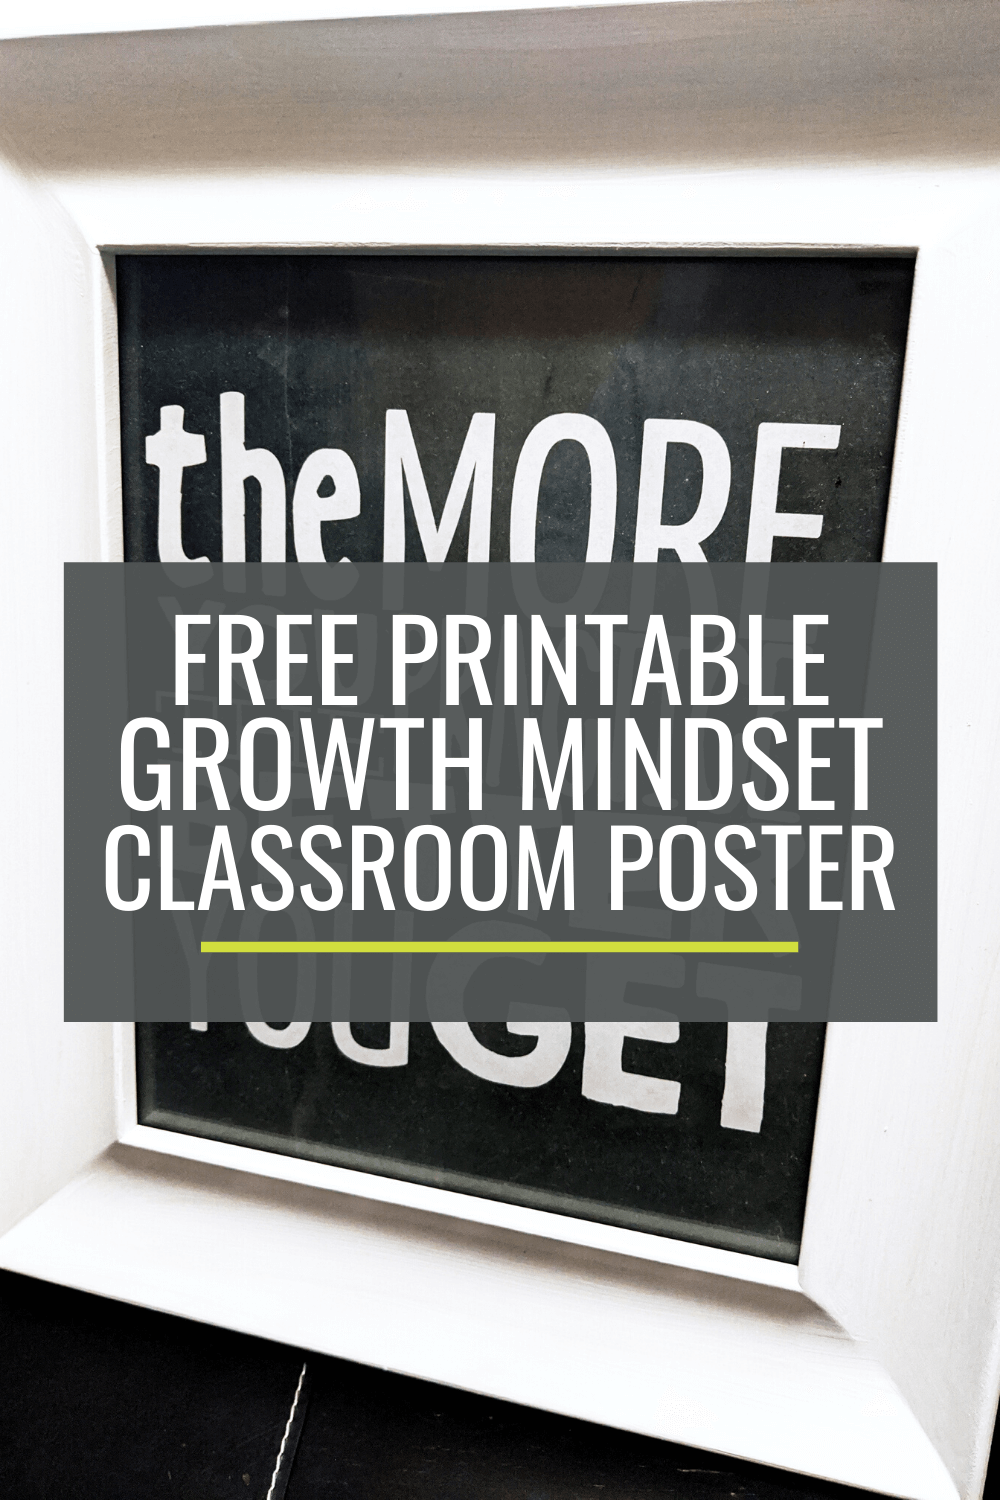 Free Printable Growth Mindset Classroom Poster